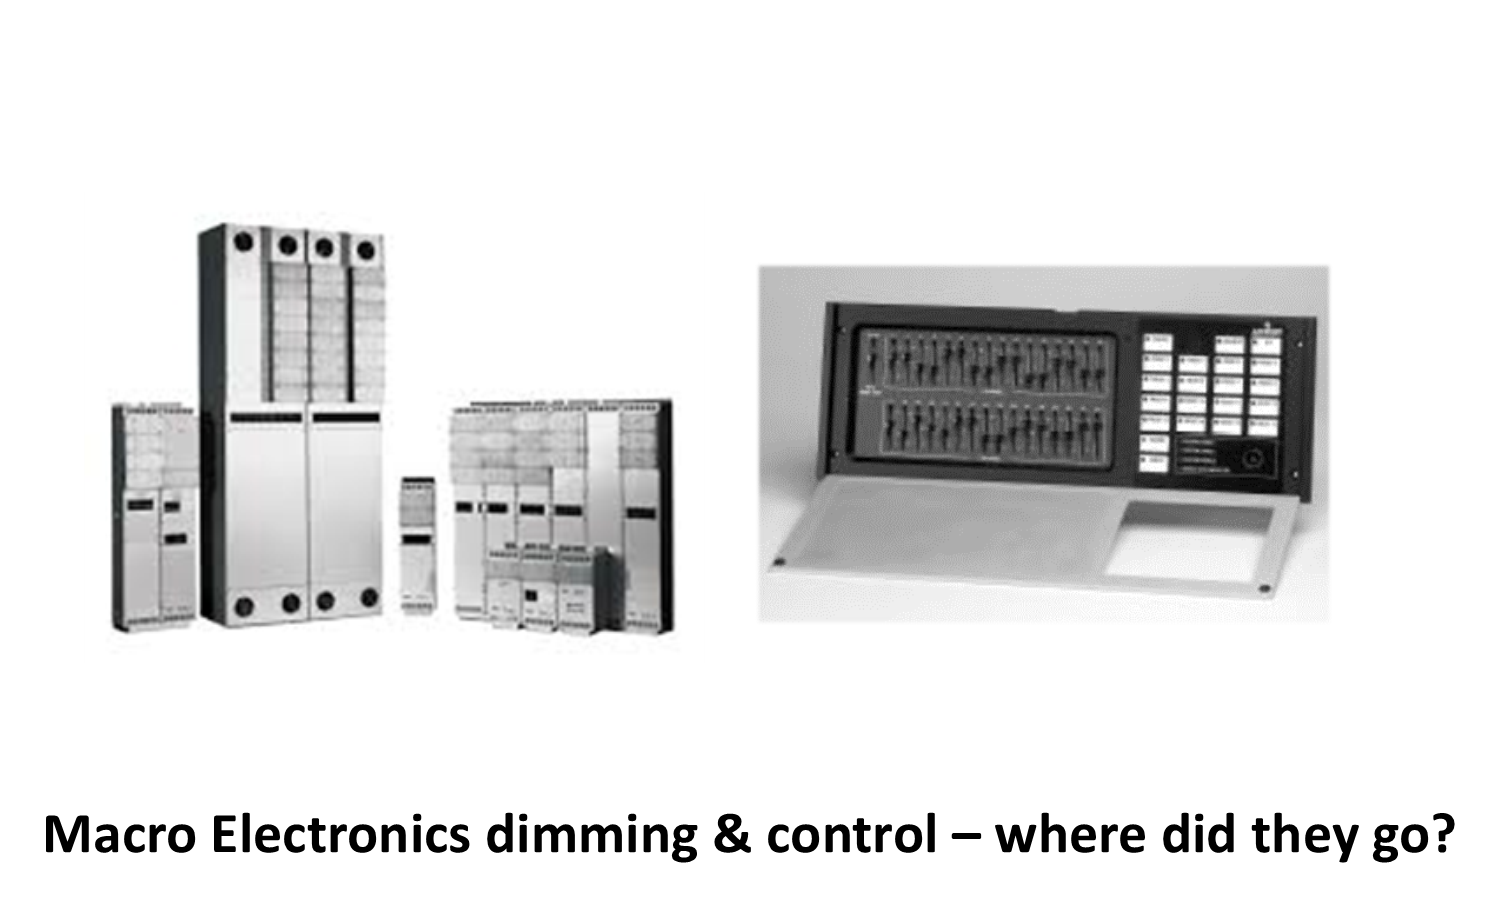 Macro Electronics dimming & control – where did they go?